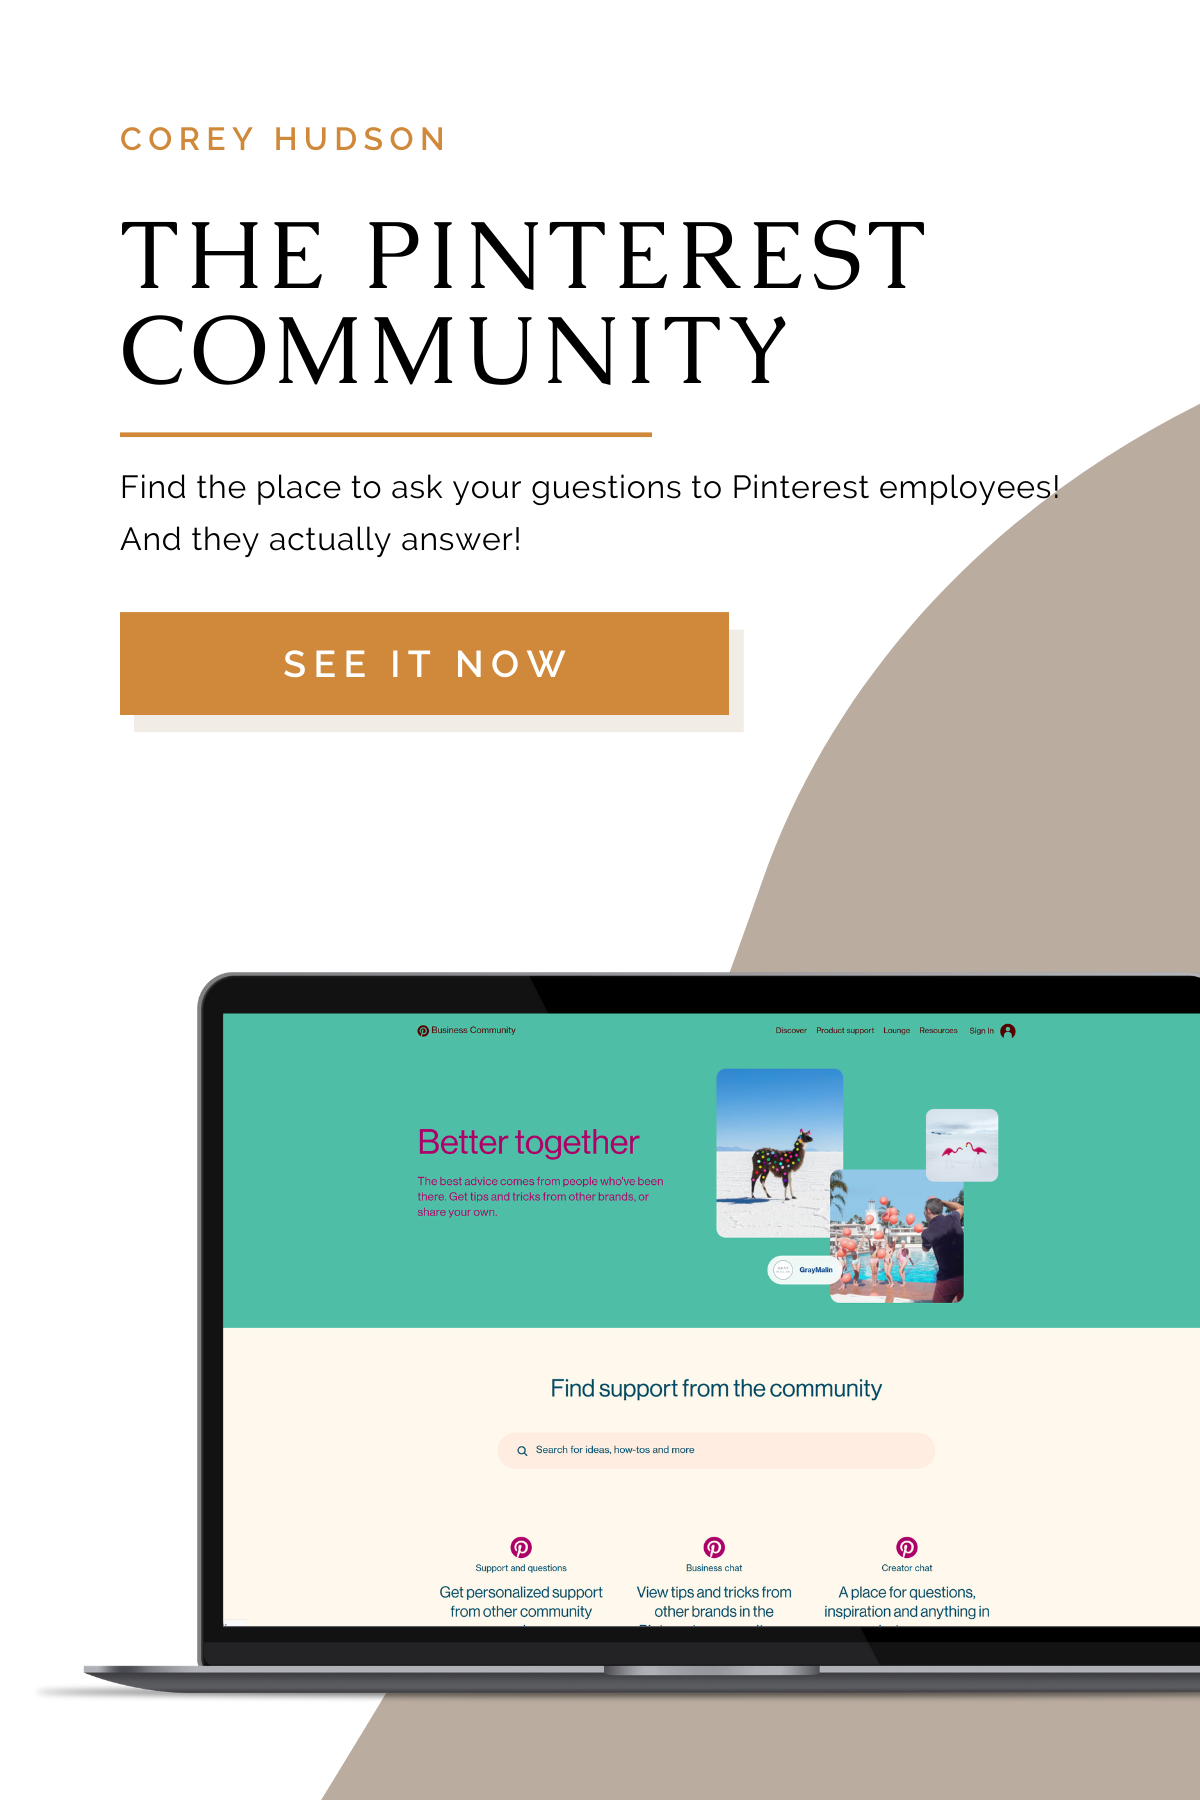 7 - Get the Most Out of the Pinterest Community